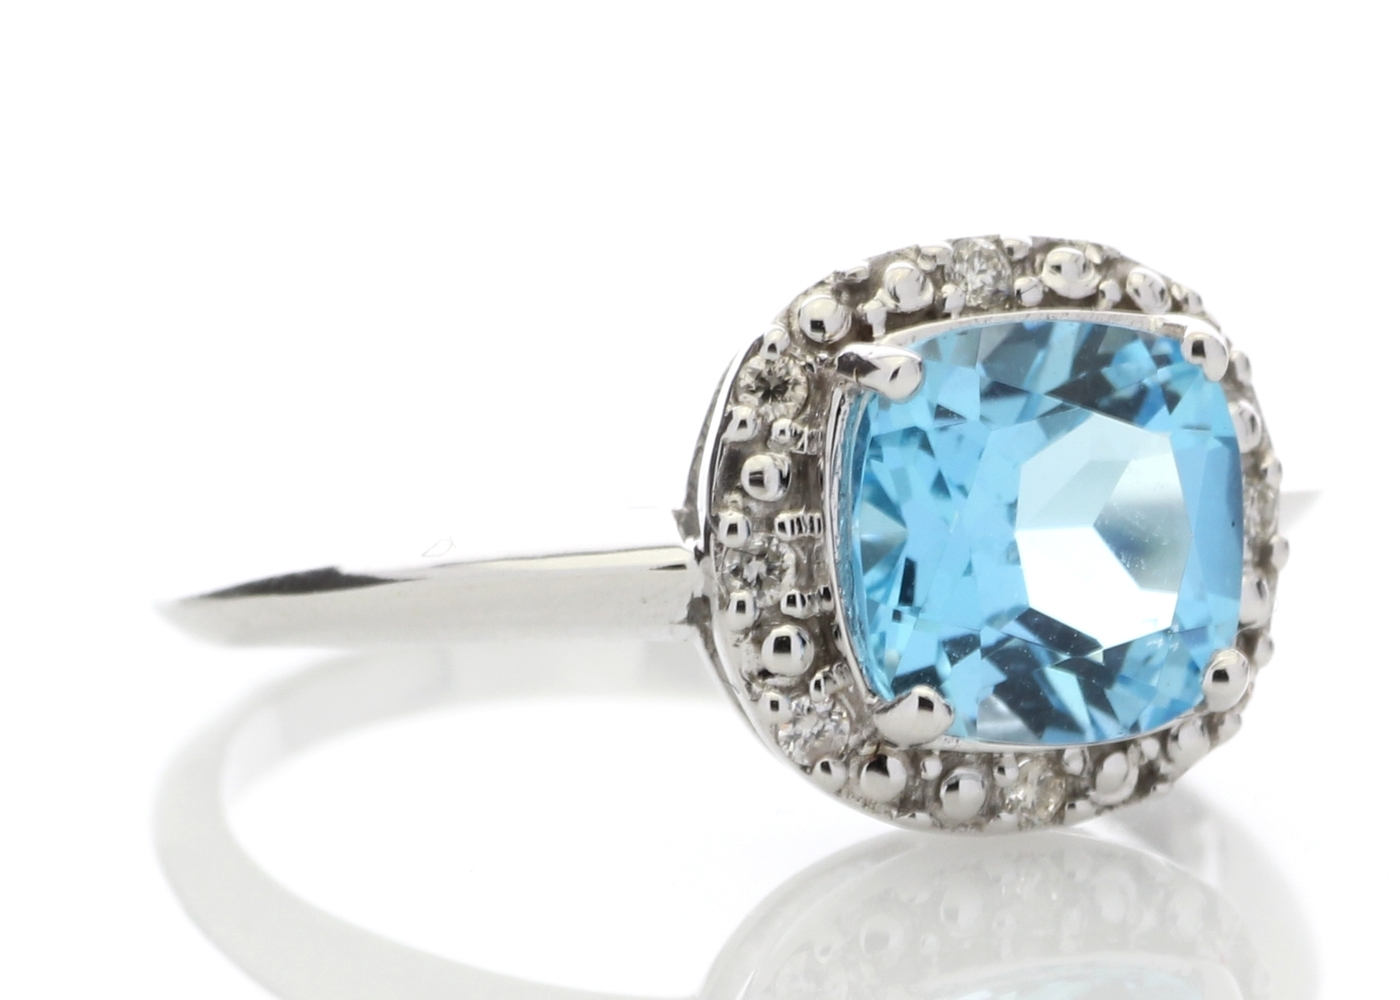 Lot 60 - 9ct White Gold Blue Topaz Diamond Ring